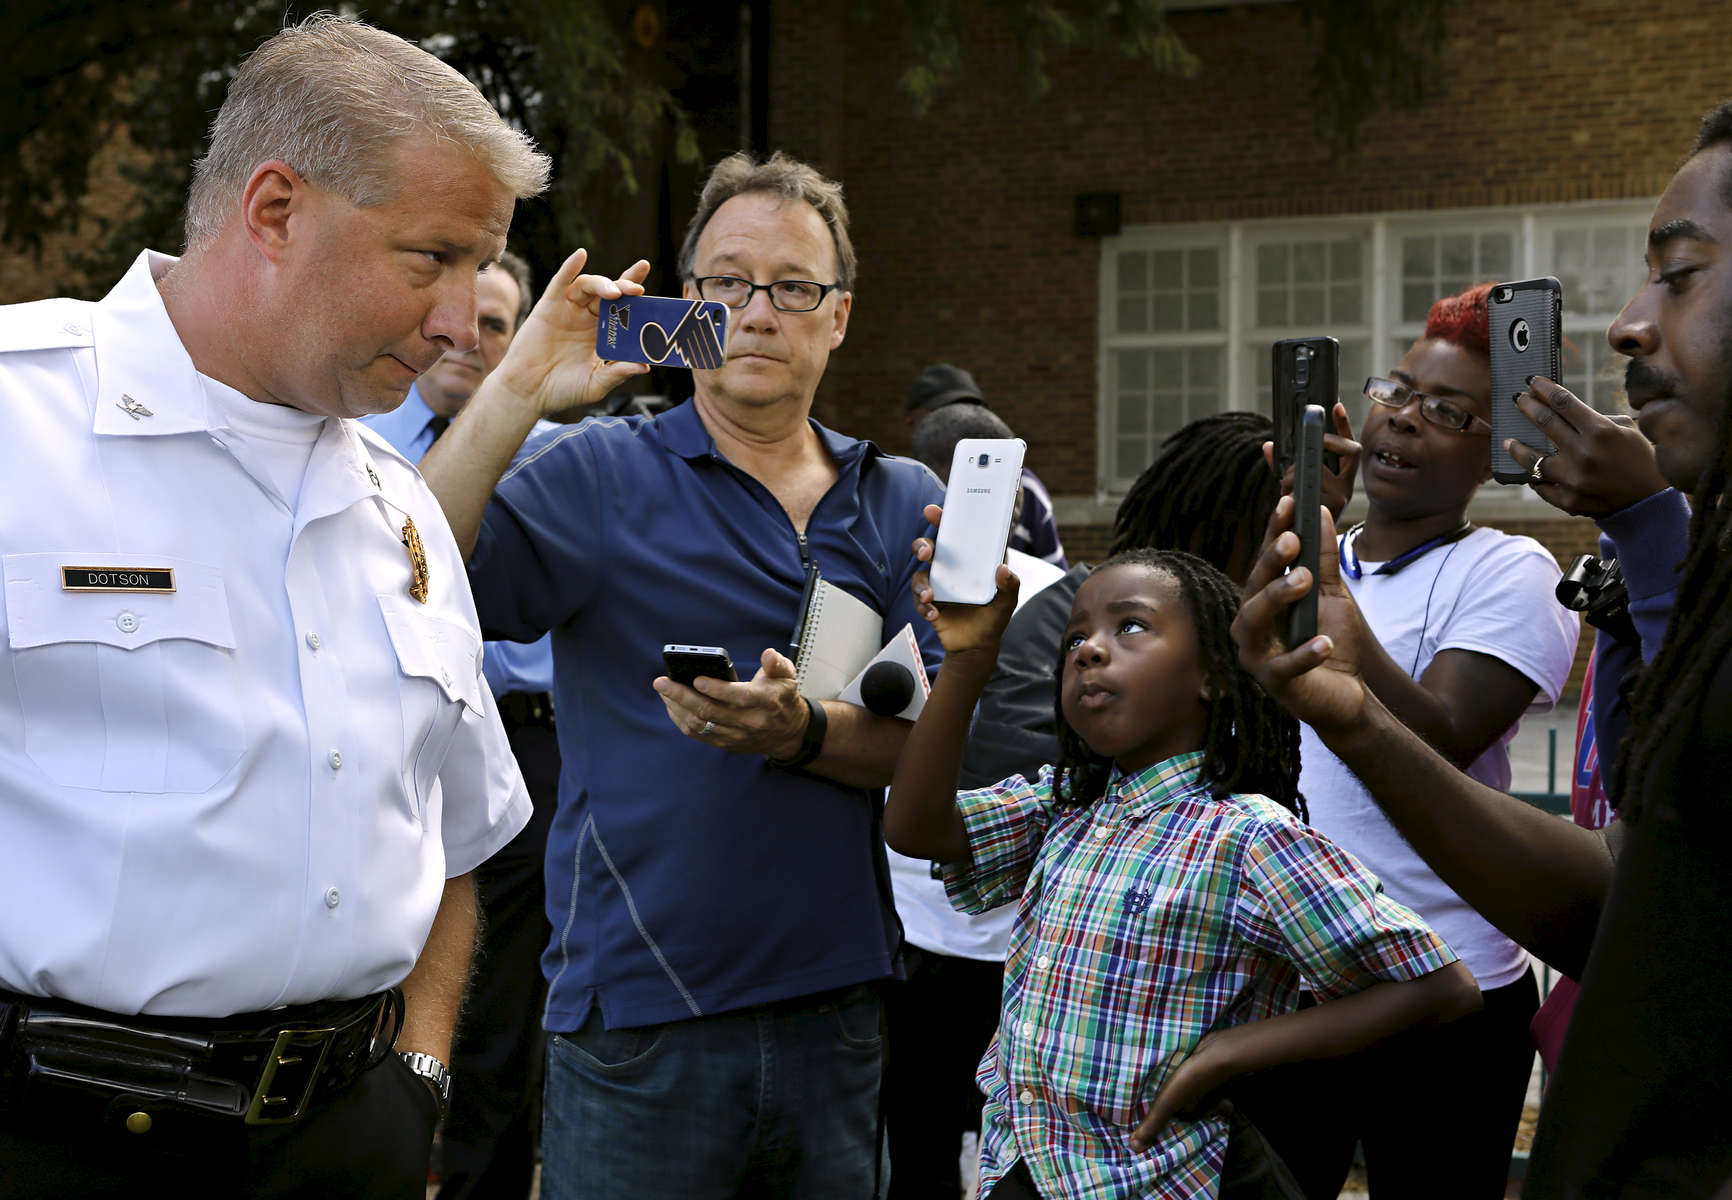 J'volte Jones, 8, holds up a cellphone to record video of St. Louis police chief Sam Dotson (left) as Dotson takes questions from the community after briefing the press about an incident where two St. Louis police officers shoot a 14 year-old boy in the 5000 block of Beacon Avenue in St. Louis on Sunday, Oct. 2, 2016. {quote}This shouldn't be their normal{quote} said J'vonte's mother Crystal Brown (not pictured). Dotson says the 14 year-old fired one shot at police who were chasing him, the police returned fire an unknown number of times hitting the boy.Photo by David Carson, dcarson@post-dispatch.com